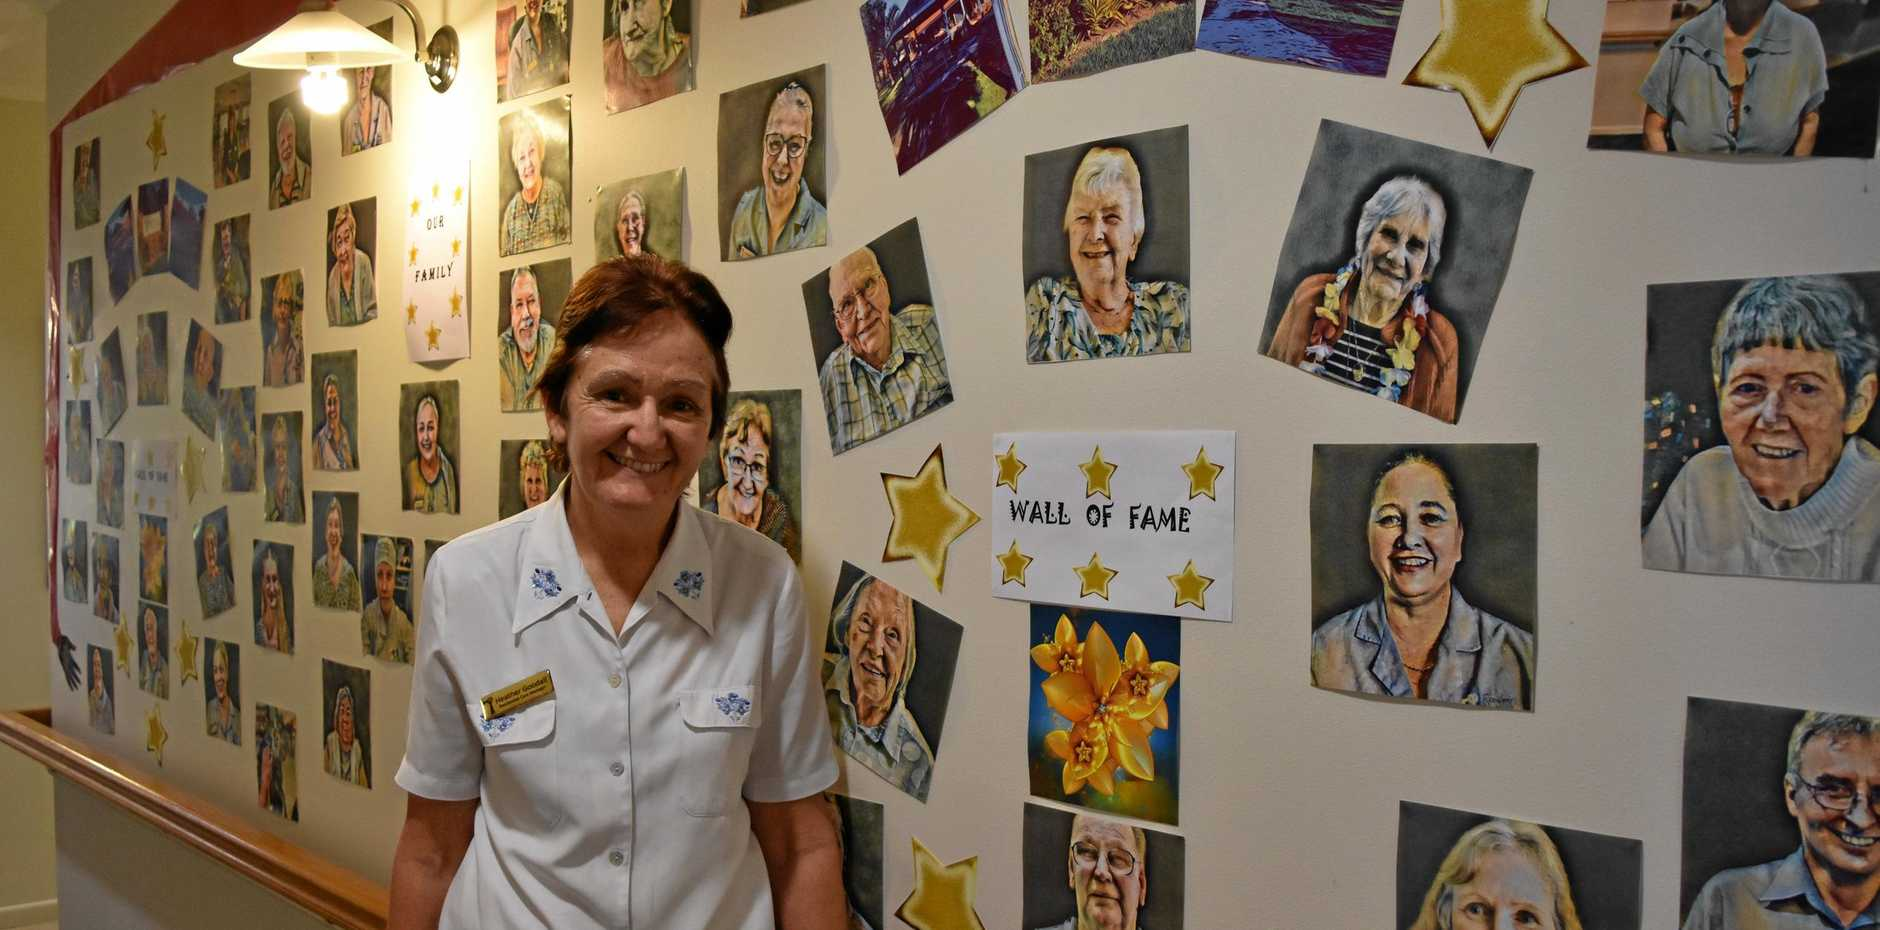 RETIREMENT: Heather Goodall said good-bye yesterday to her work family, including staff and the 20 guests she has helped look after in her role as residential care manager at Tin Can Bay's only aged care facility, residency by Dillons.